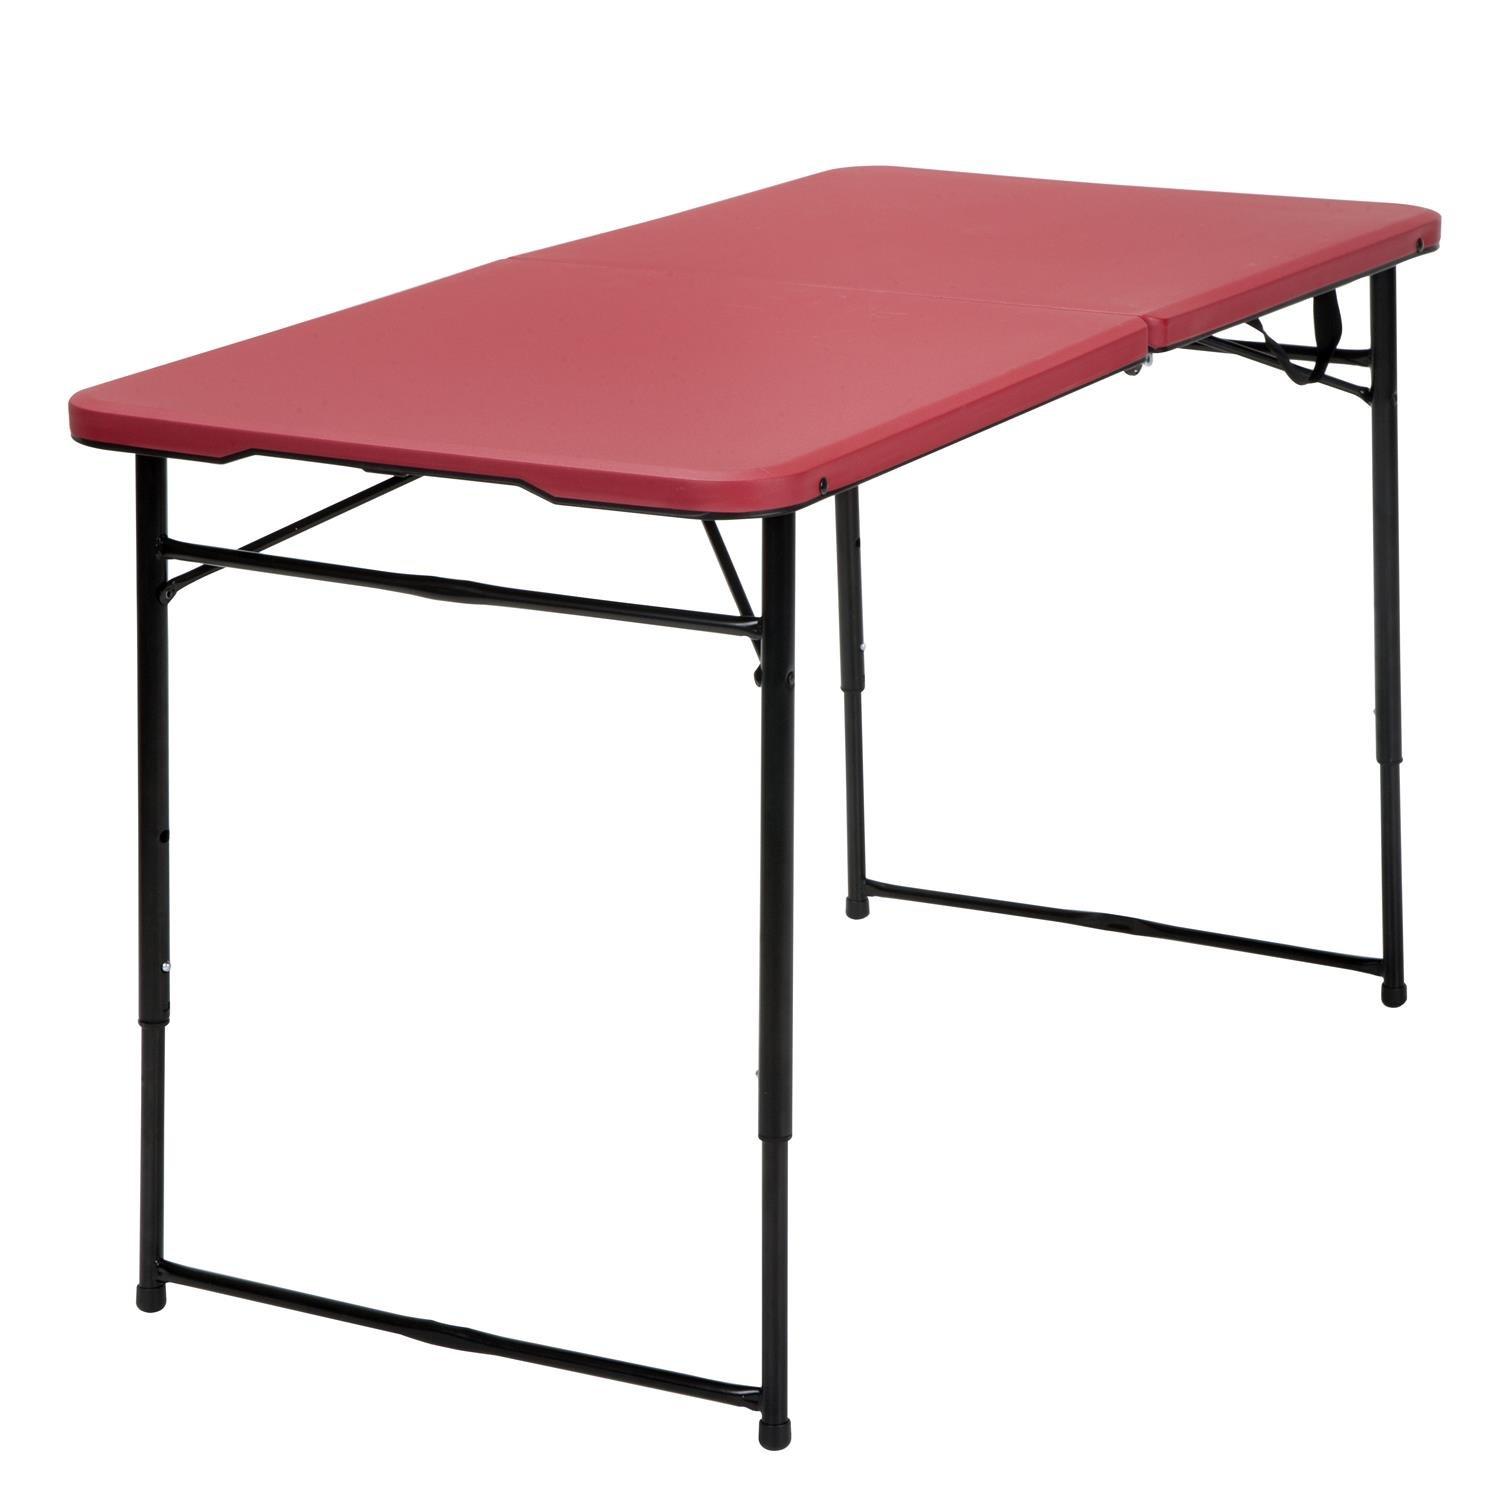 Cosco Products Indoor Outdoor Adjustable Height Center Fold Tailgate Table with Carrying Handle, 4', Black